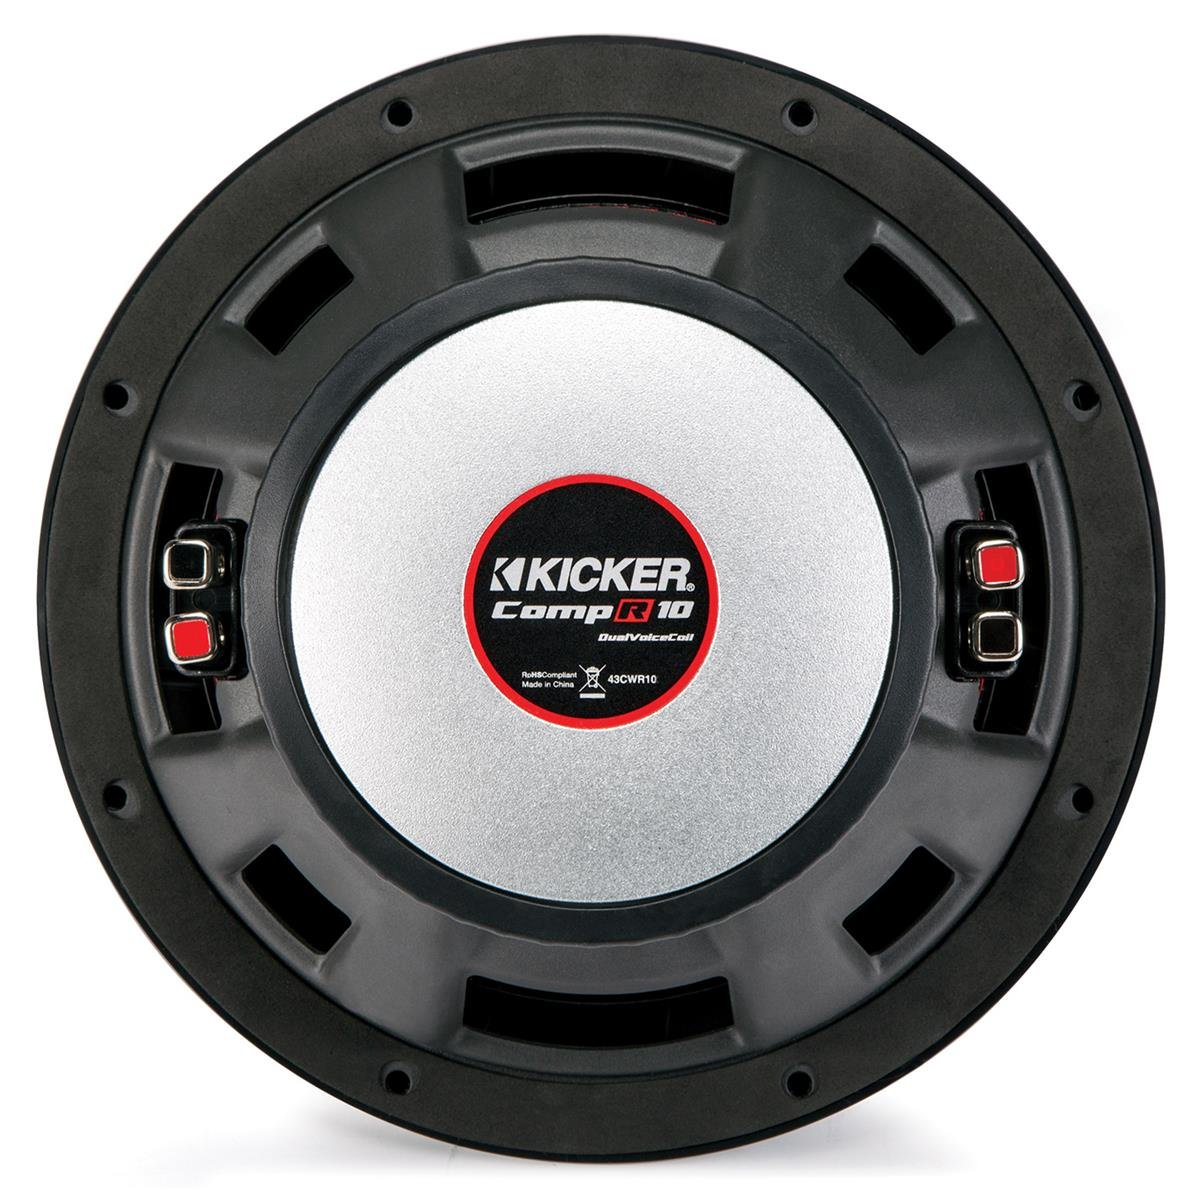 Kicker 10'' 1600W 2-Ohm Vented Dual Loaded Car Enclosure Subwoofers | 43DCWR102